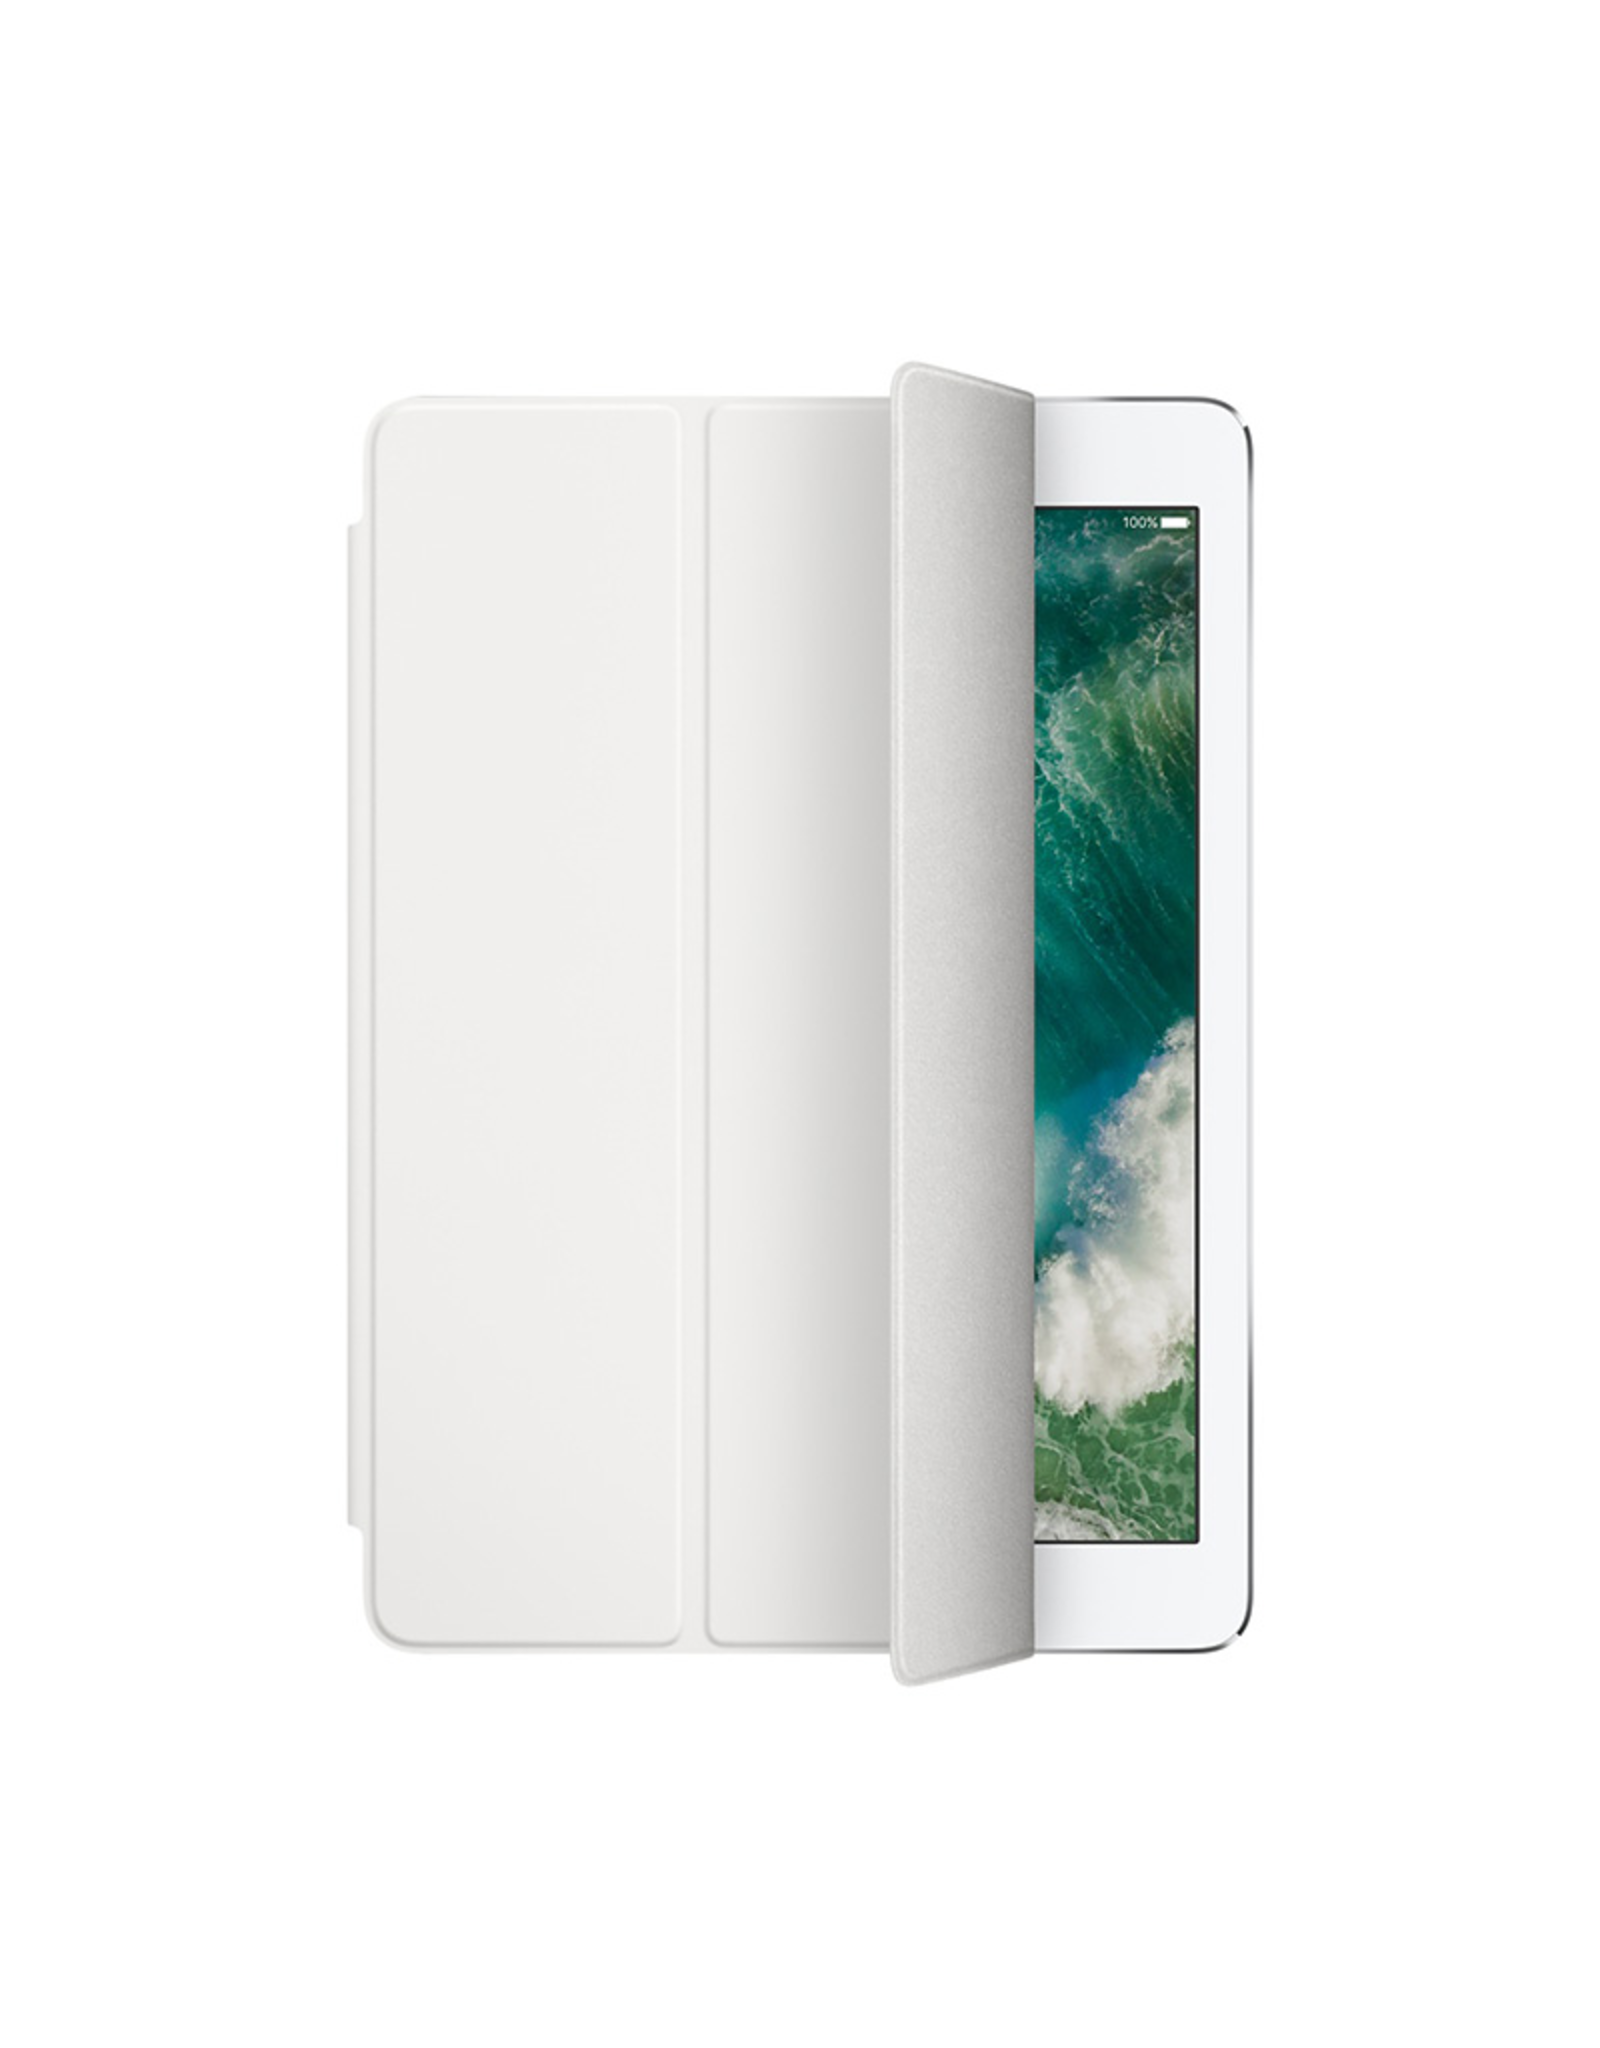 Apple Apple Smart Cover for 9.7-inch iPad Pro - White